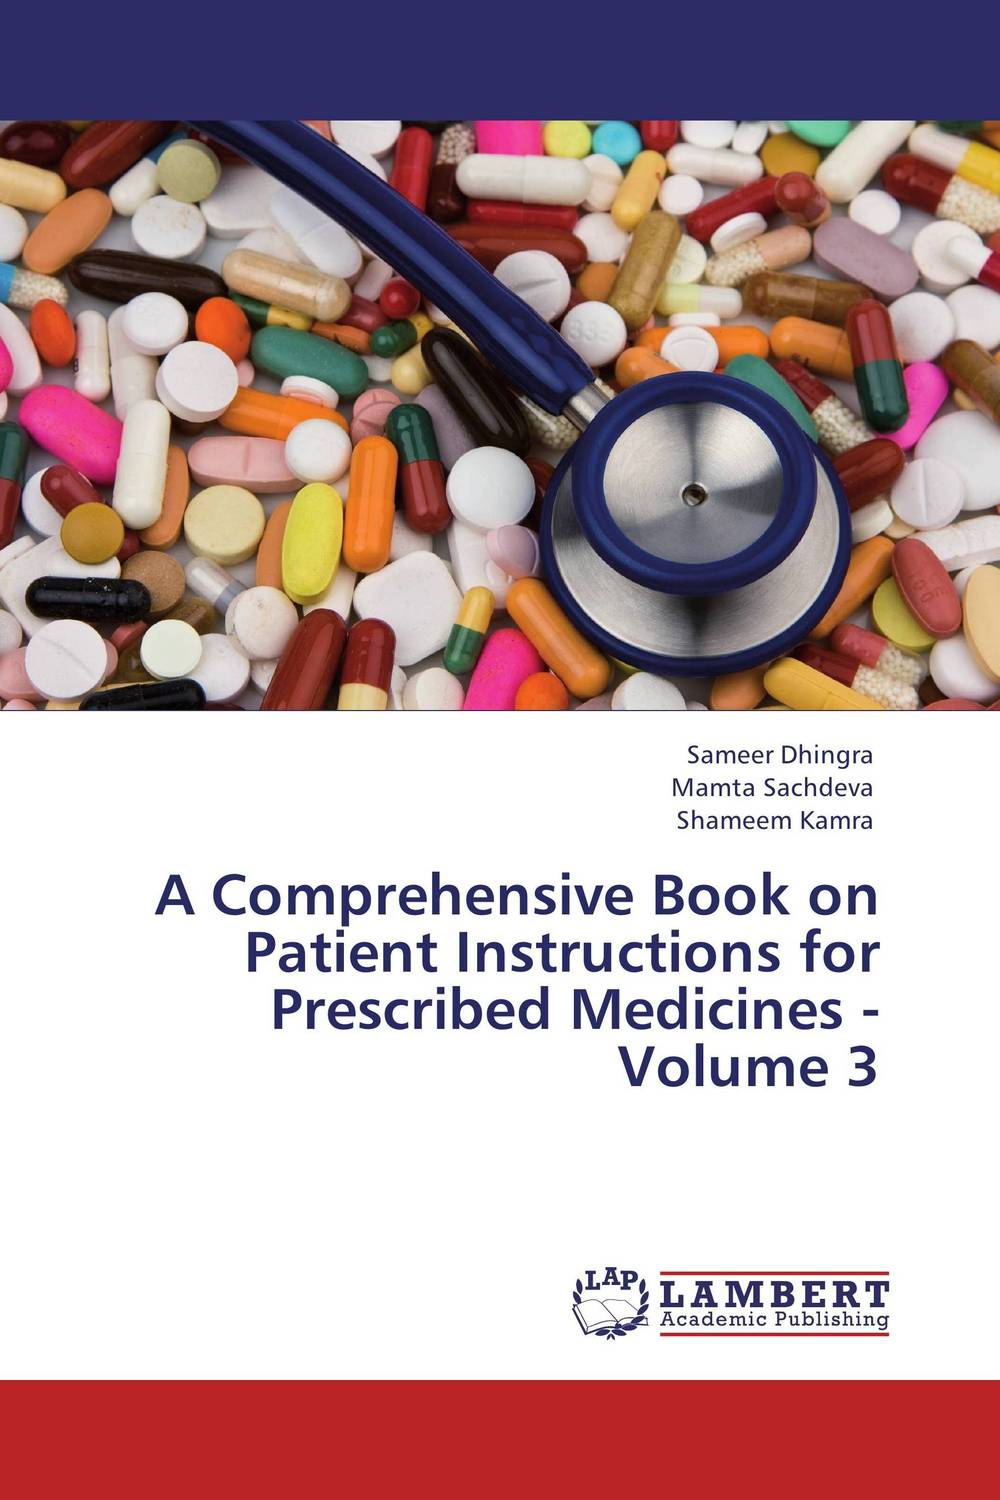 цена на A Comprehensive Book on Patient Instructions for Prescribed Medicines - Volume 3